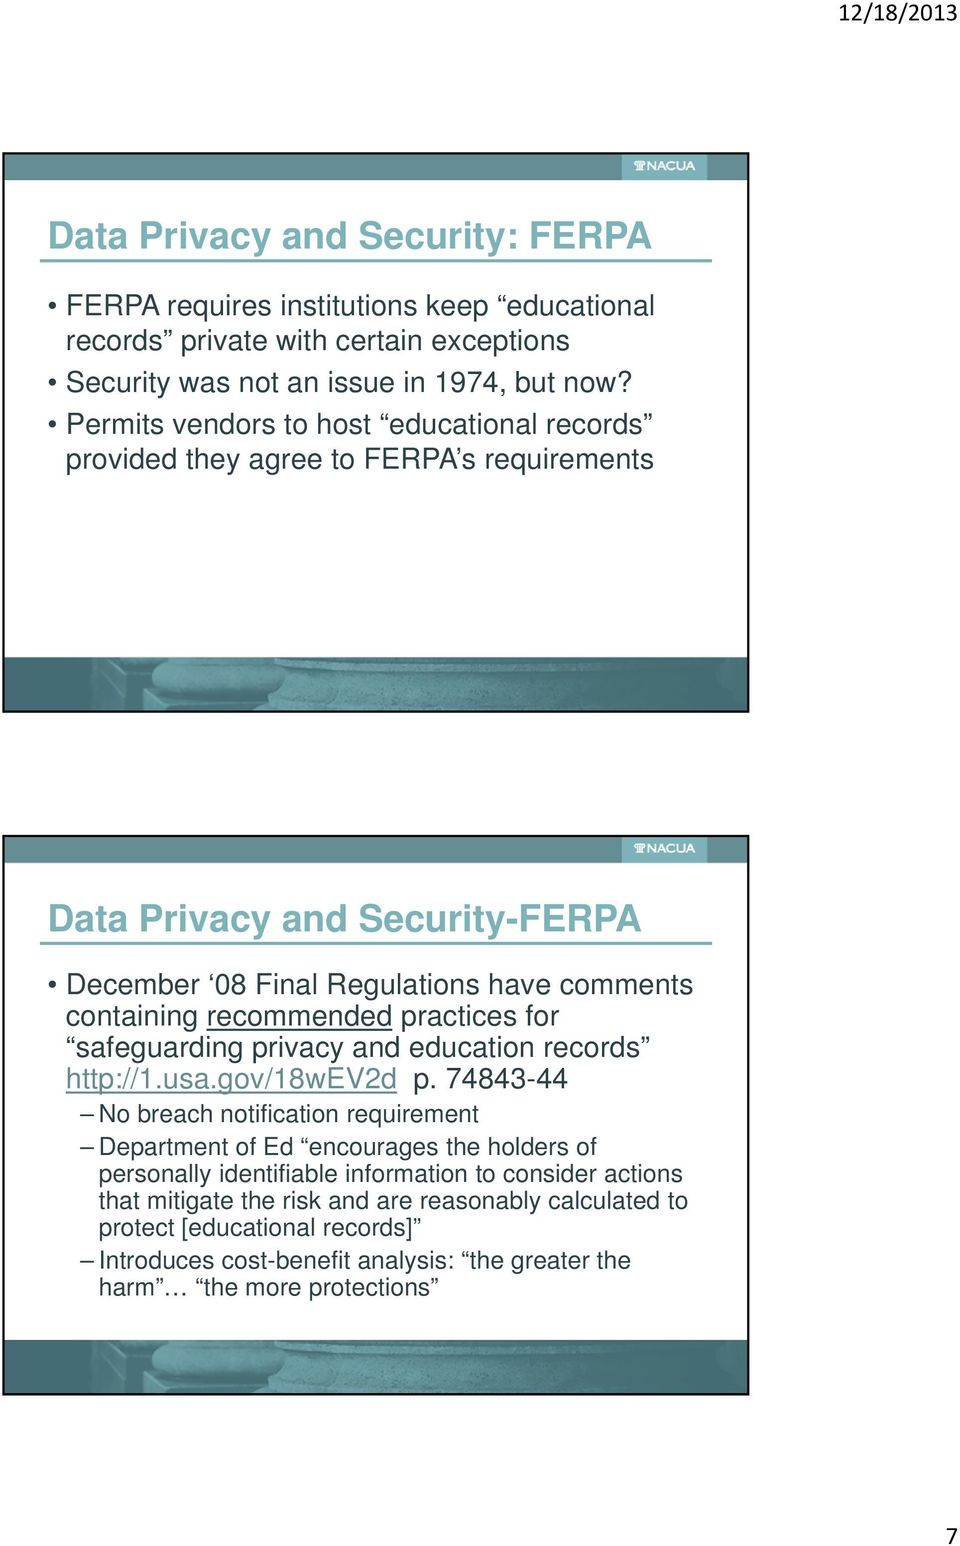 recommended practices for safeguarding privacy and education records http://1.usa.gov/18wev2d p.